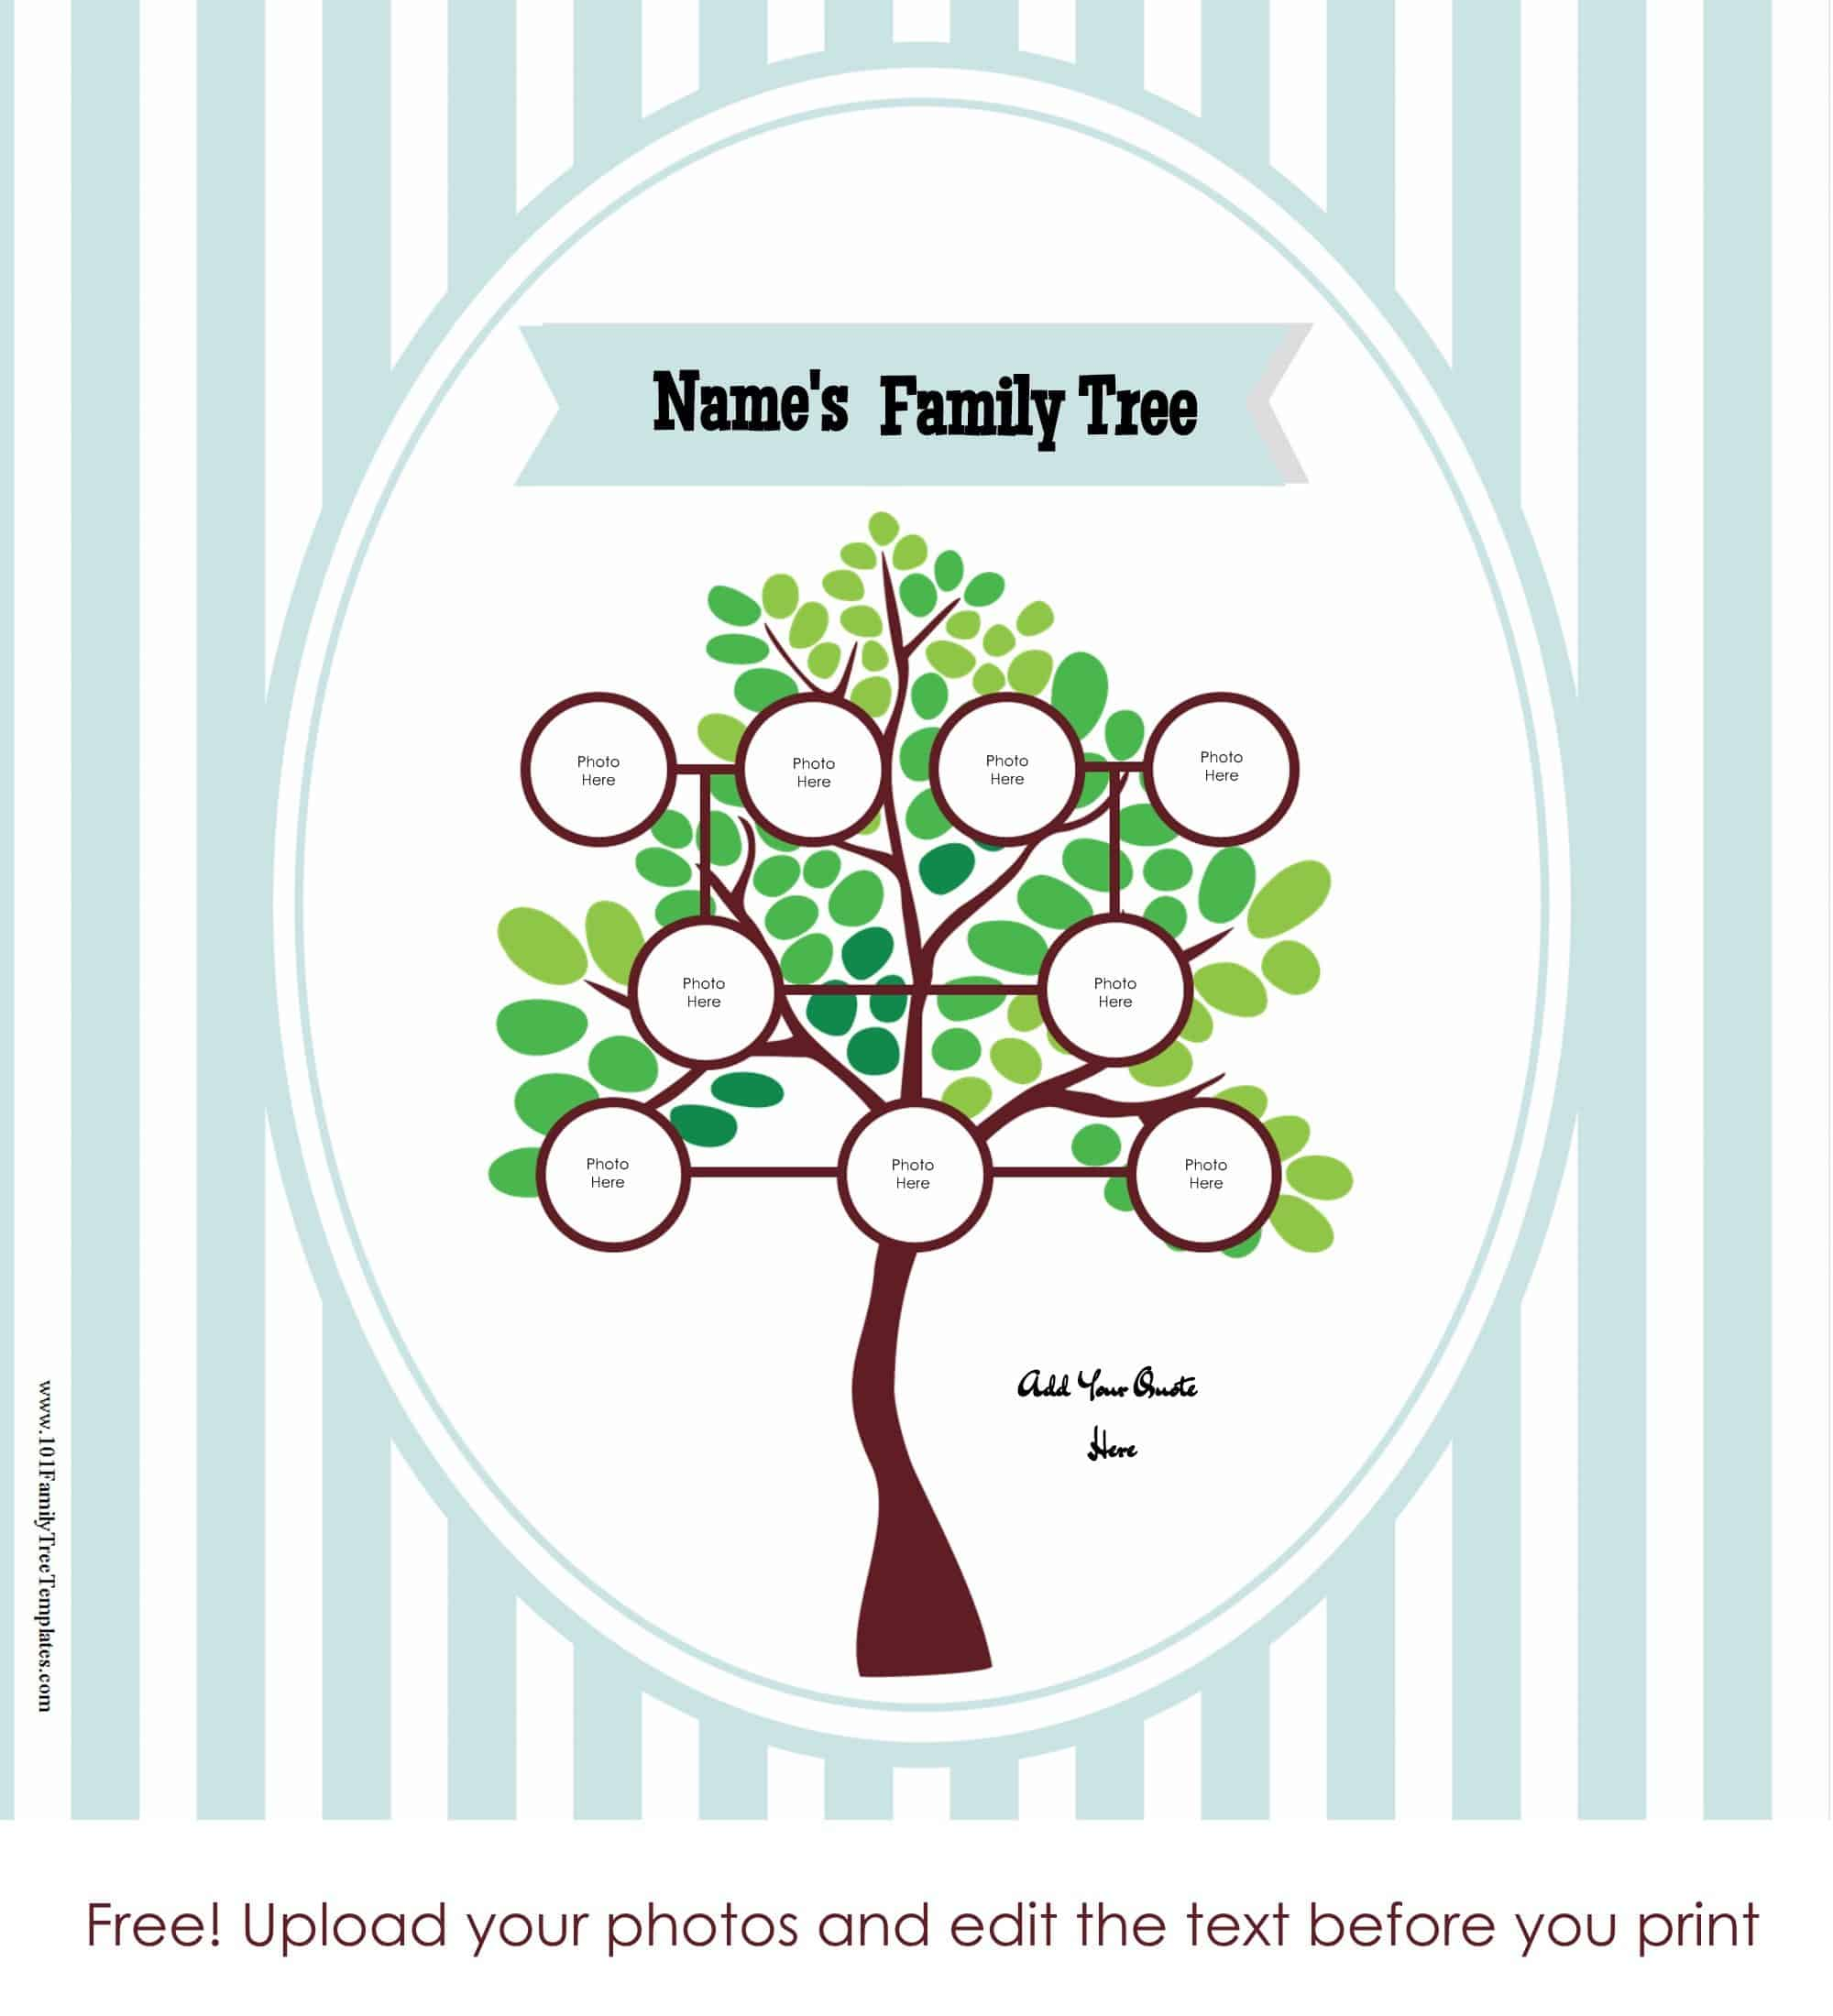 Free Family Tree Poster Customize Online Then Print At Home